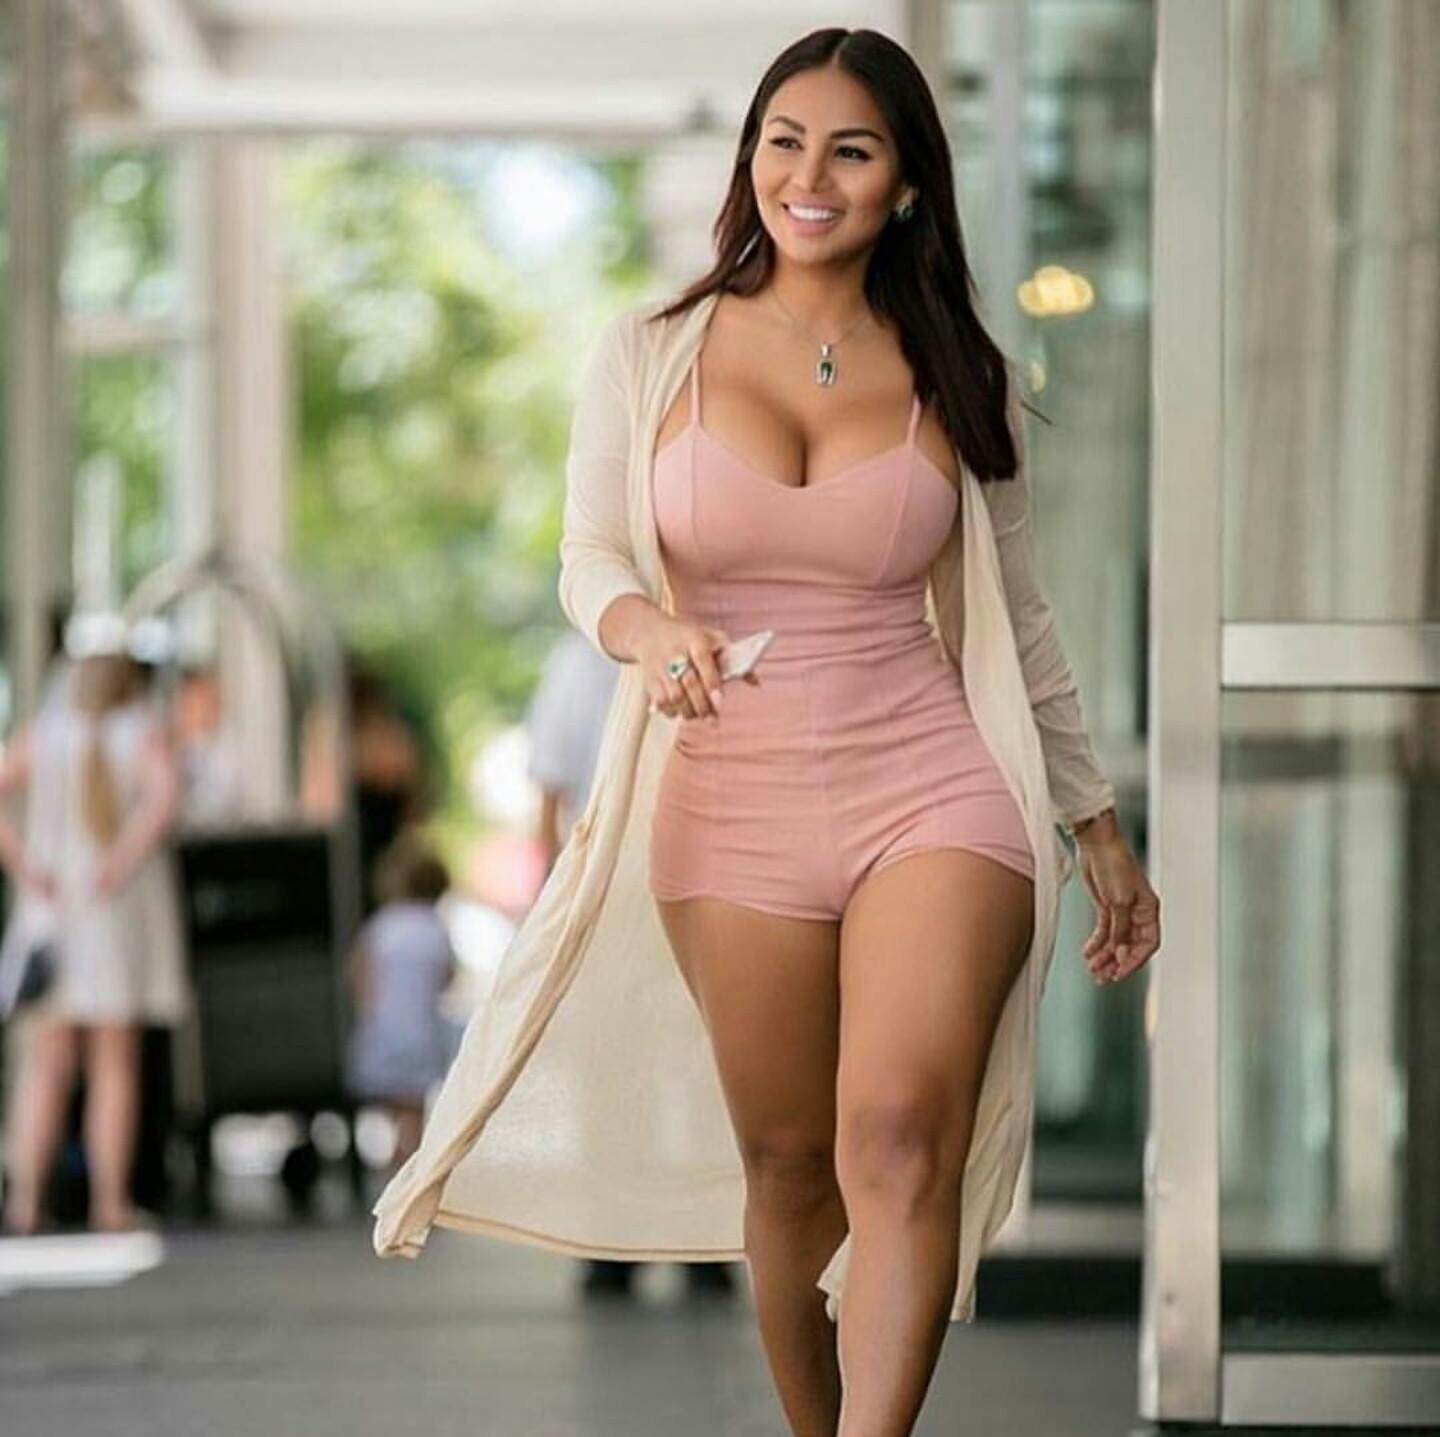 Thick Latina Women Pictures